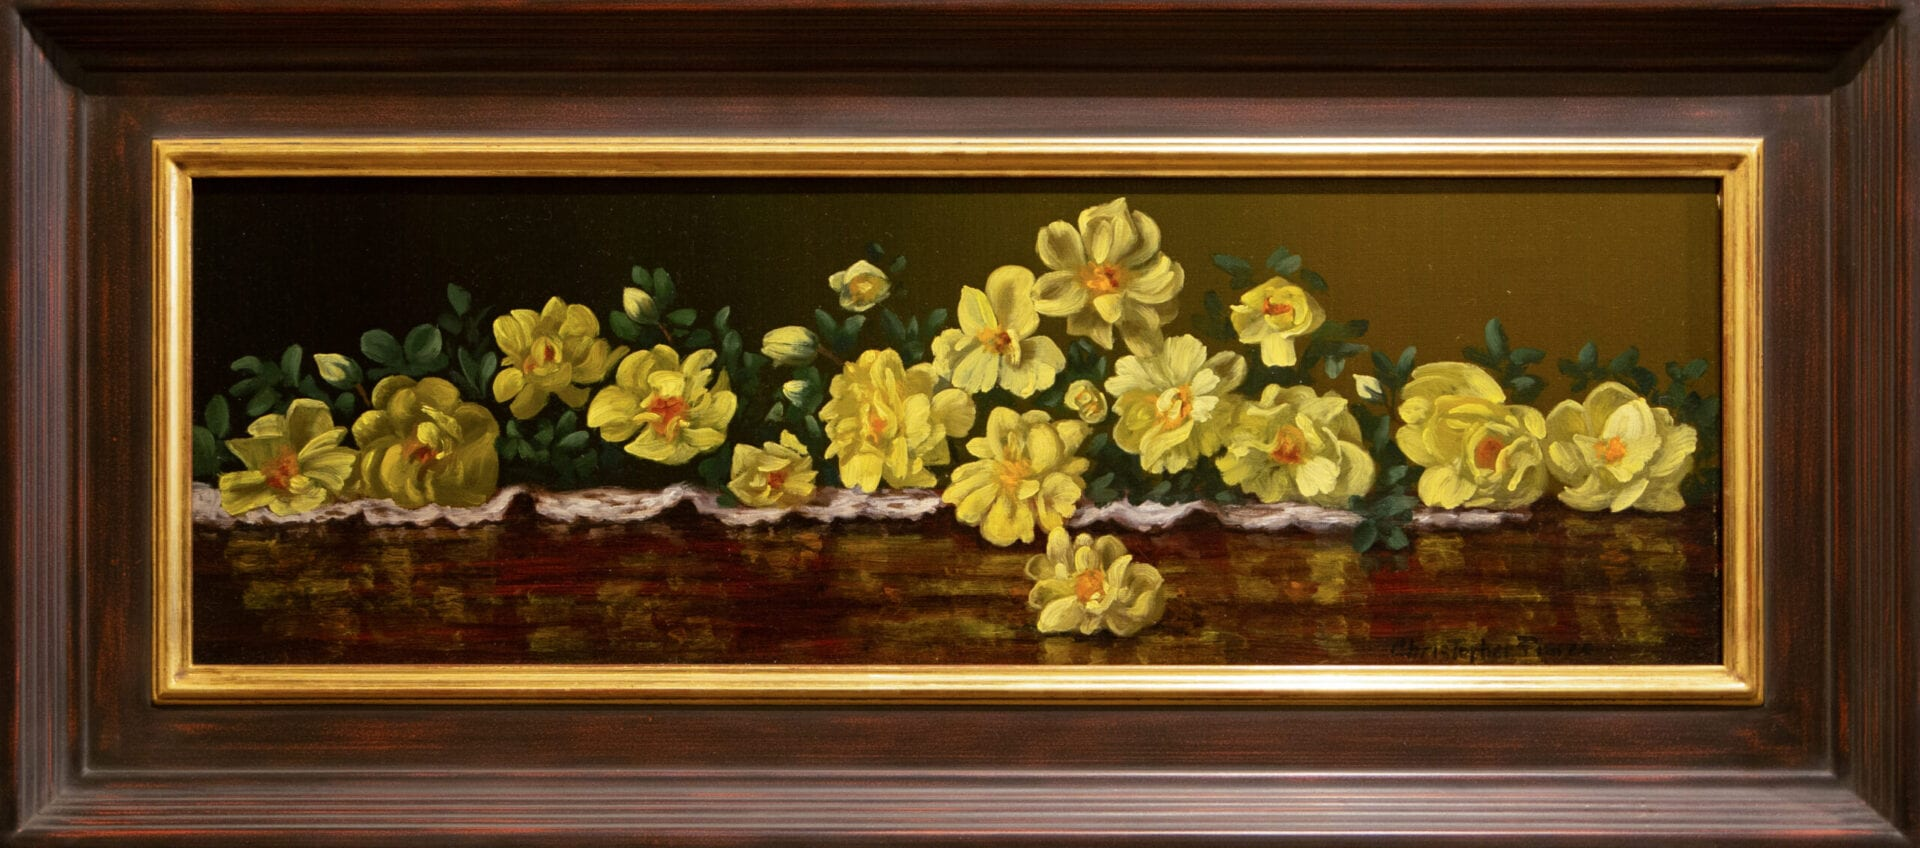 Yellow Roses | Christopher Pierce | Oil | 8 x 24""